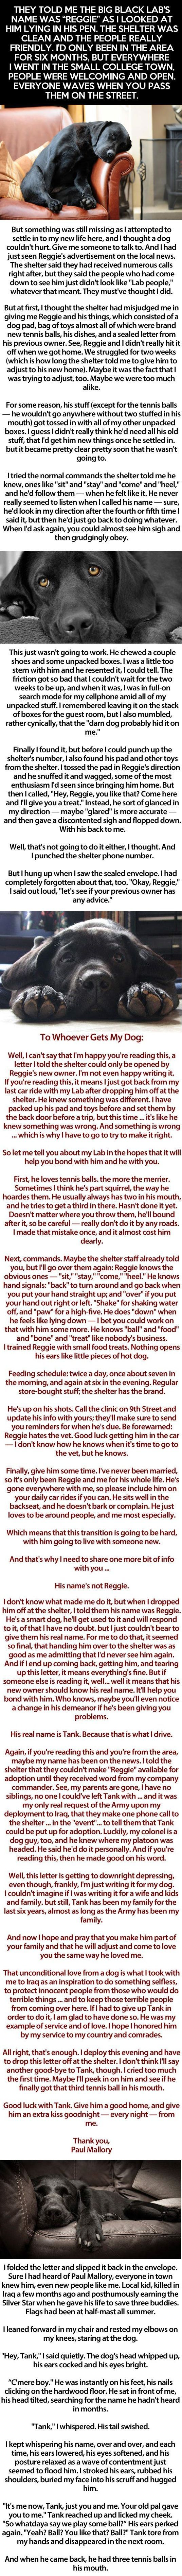 OK I am still crying after reading this... Even the animals of our servicemen and women sacrifice